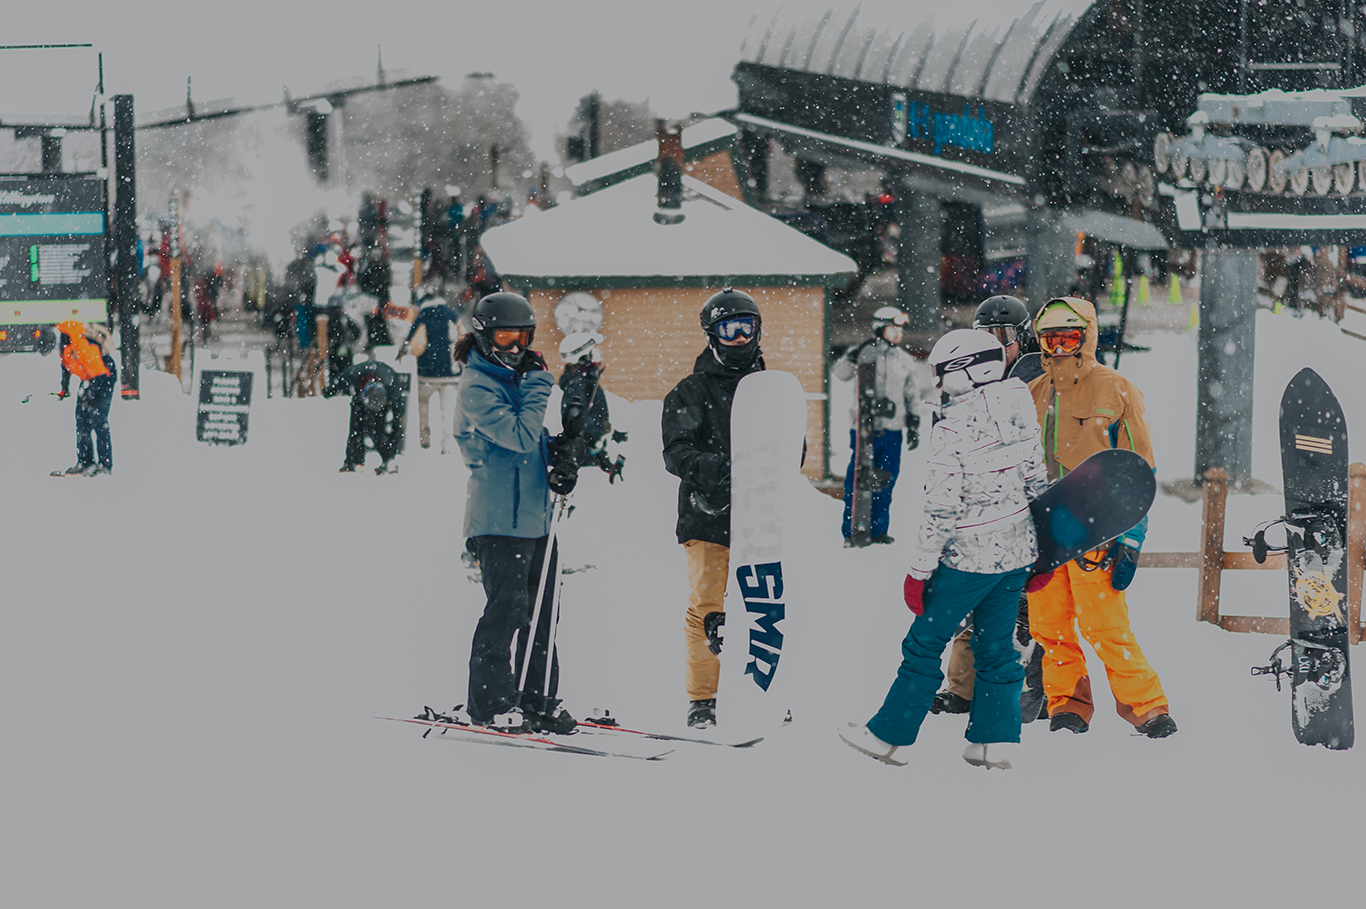 snowboarding-session-killington-vermont.jpg